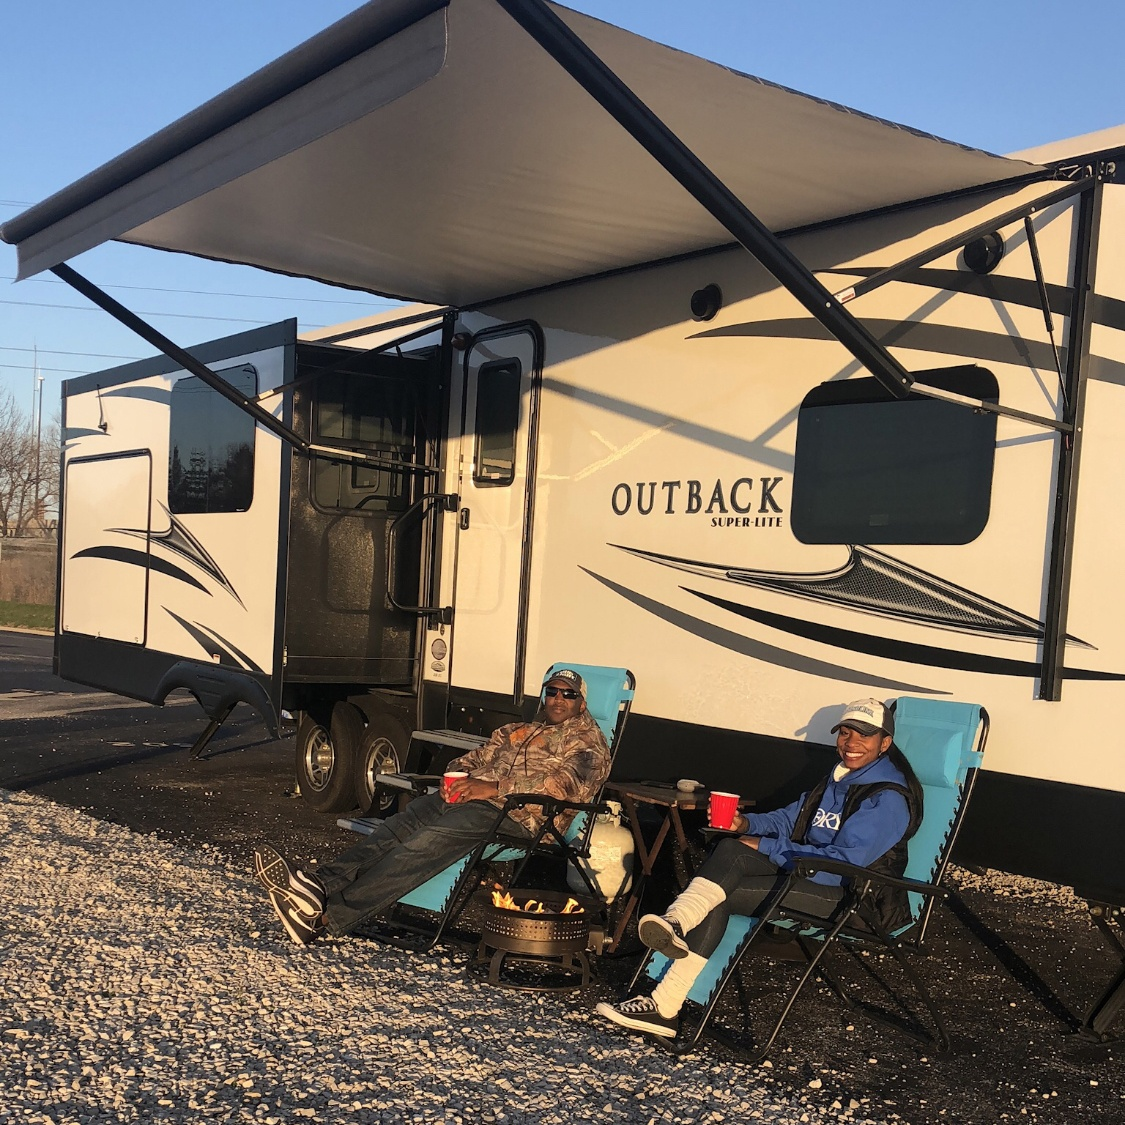 The Browns upgraded to a Keystone Outback travel trailer